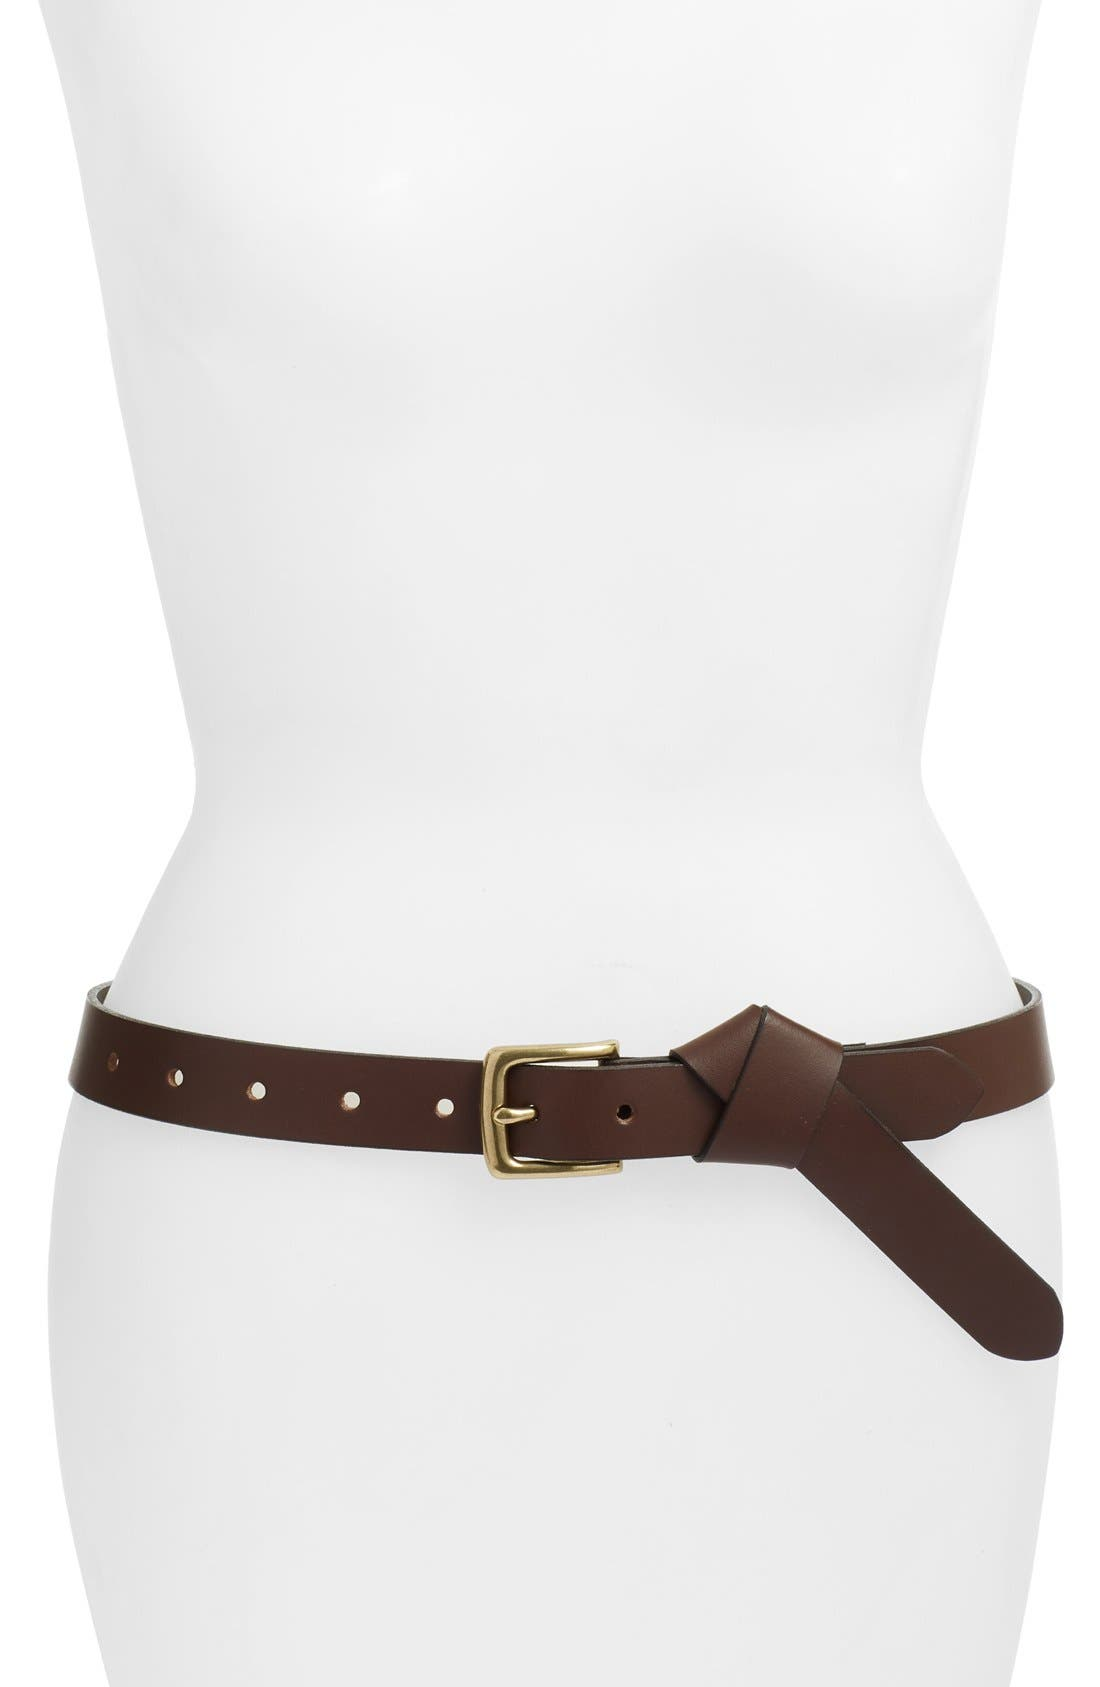 TREASURE & BOND,                             Treasure&Bond Knotted Leather Belt,                             Main thumbnail 1, color,                             210